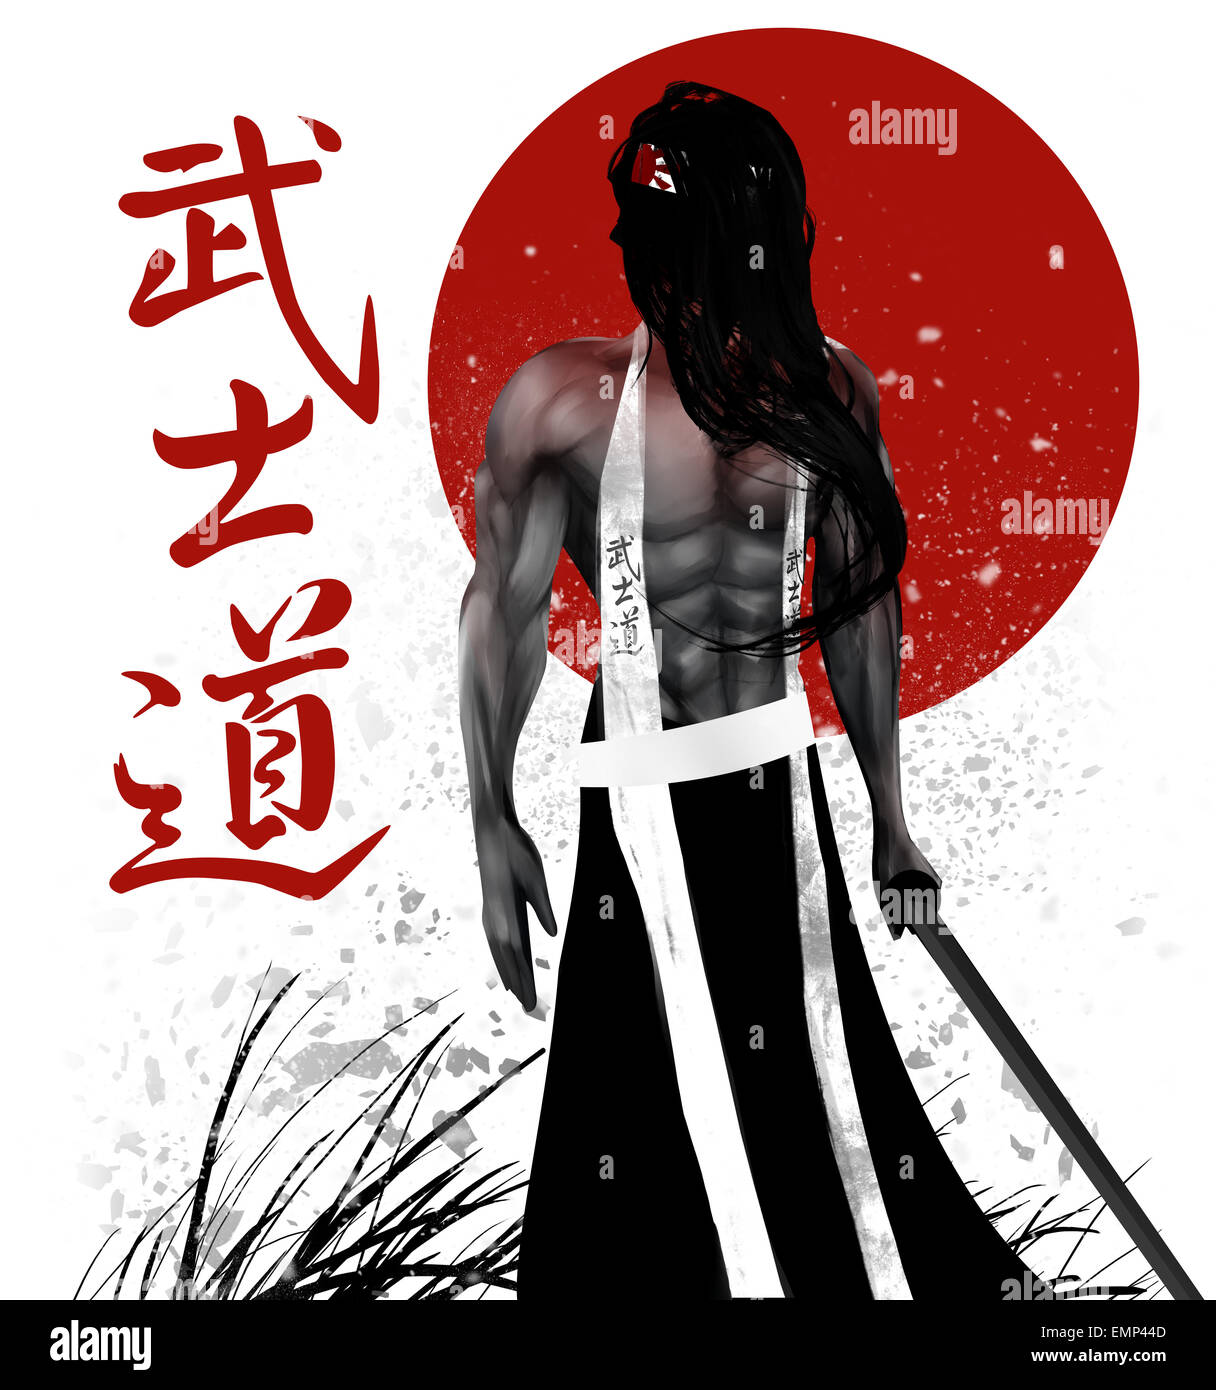 Samurai 5 Bushido Japanese Word For The Way Of The